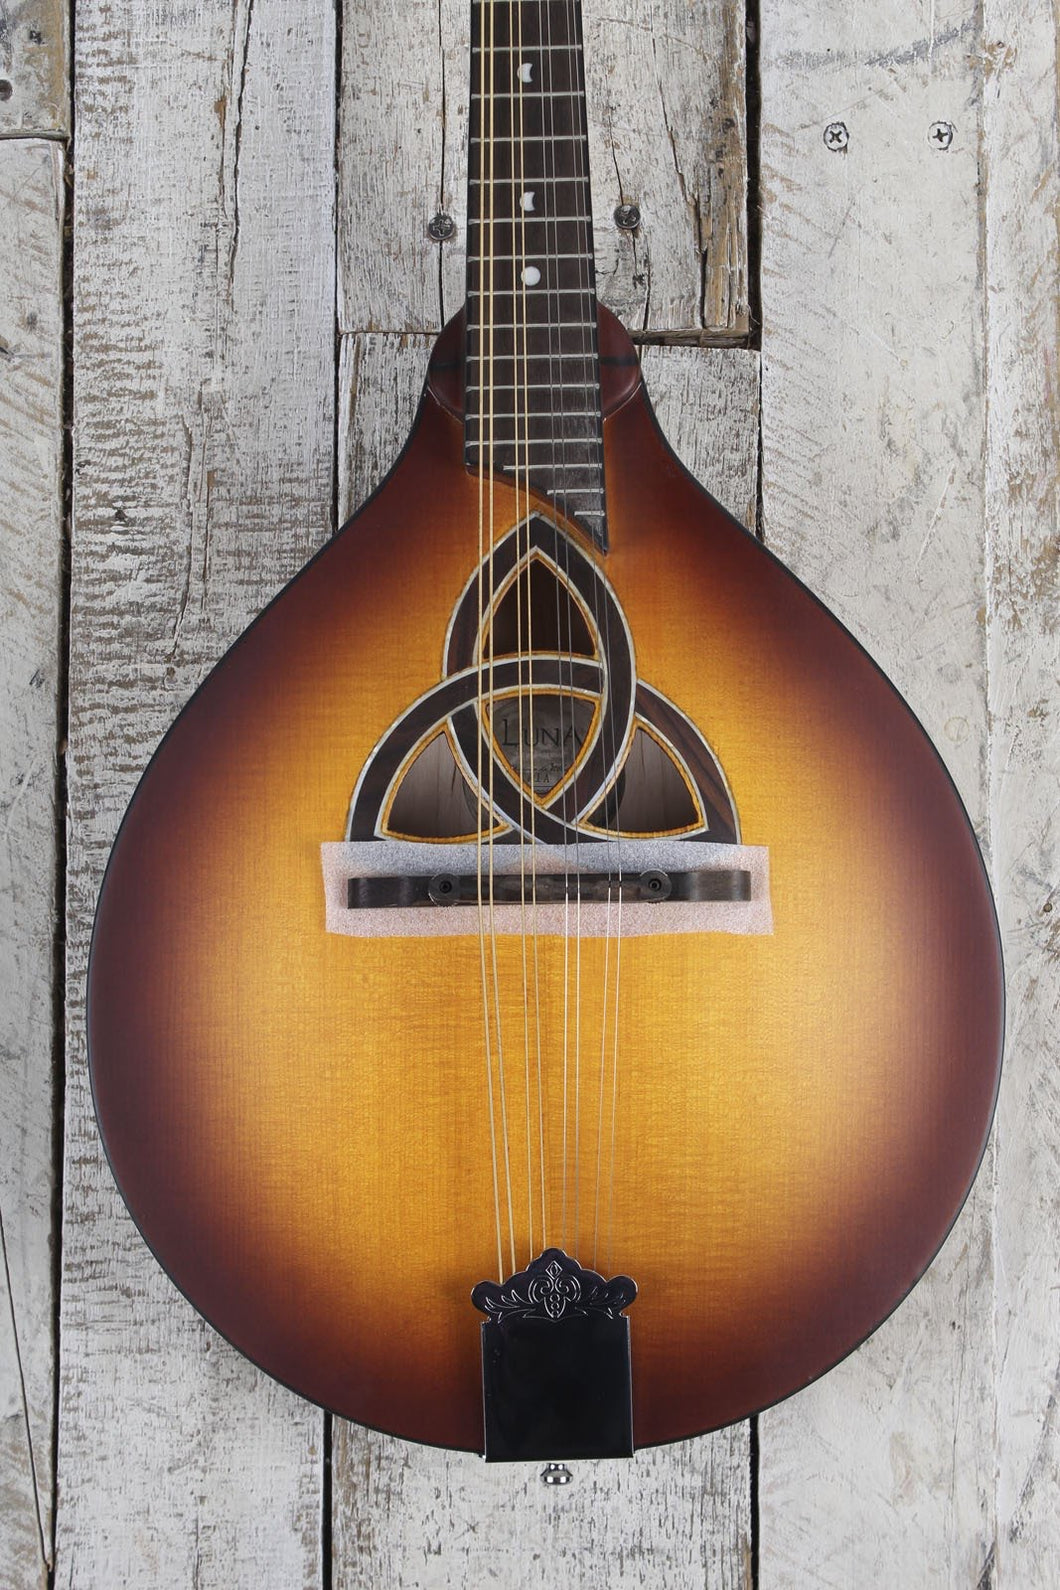 Luna Trinity A Style Mandolin Solid Spruce Top Solid Maple Body Tobacco Burst